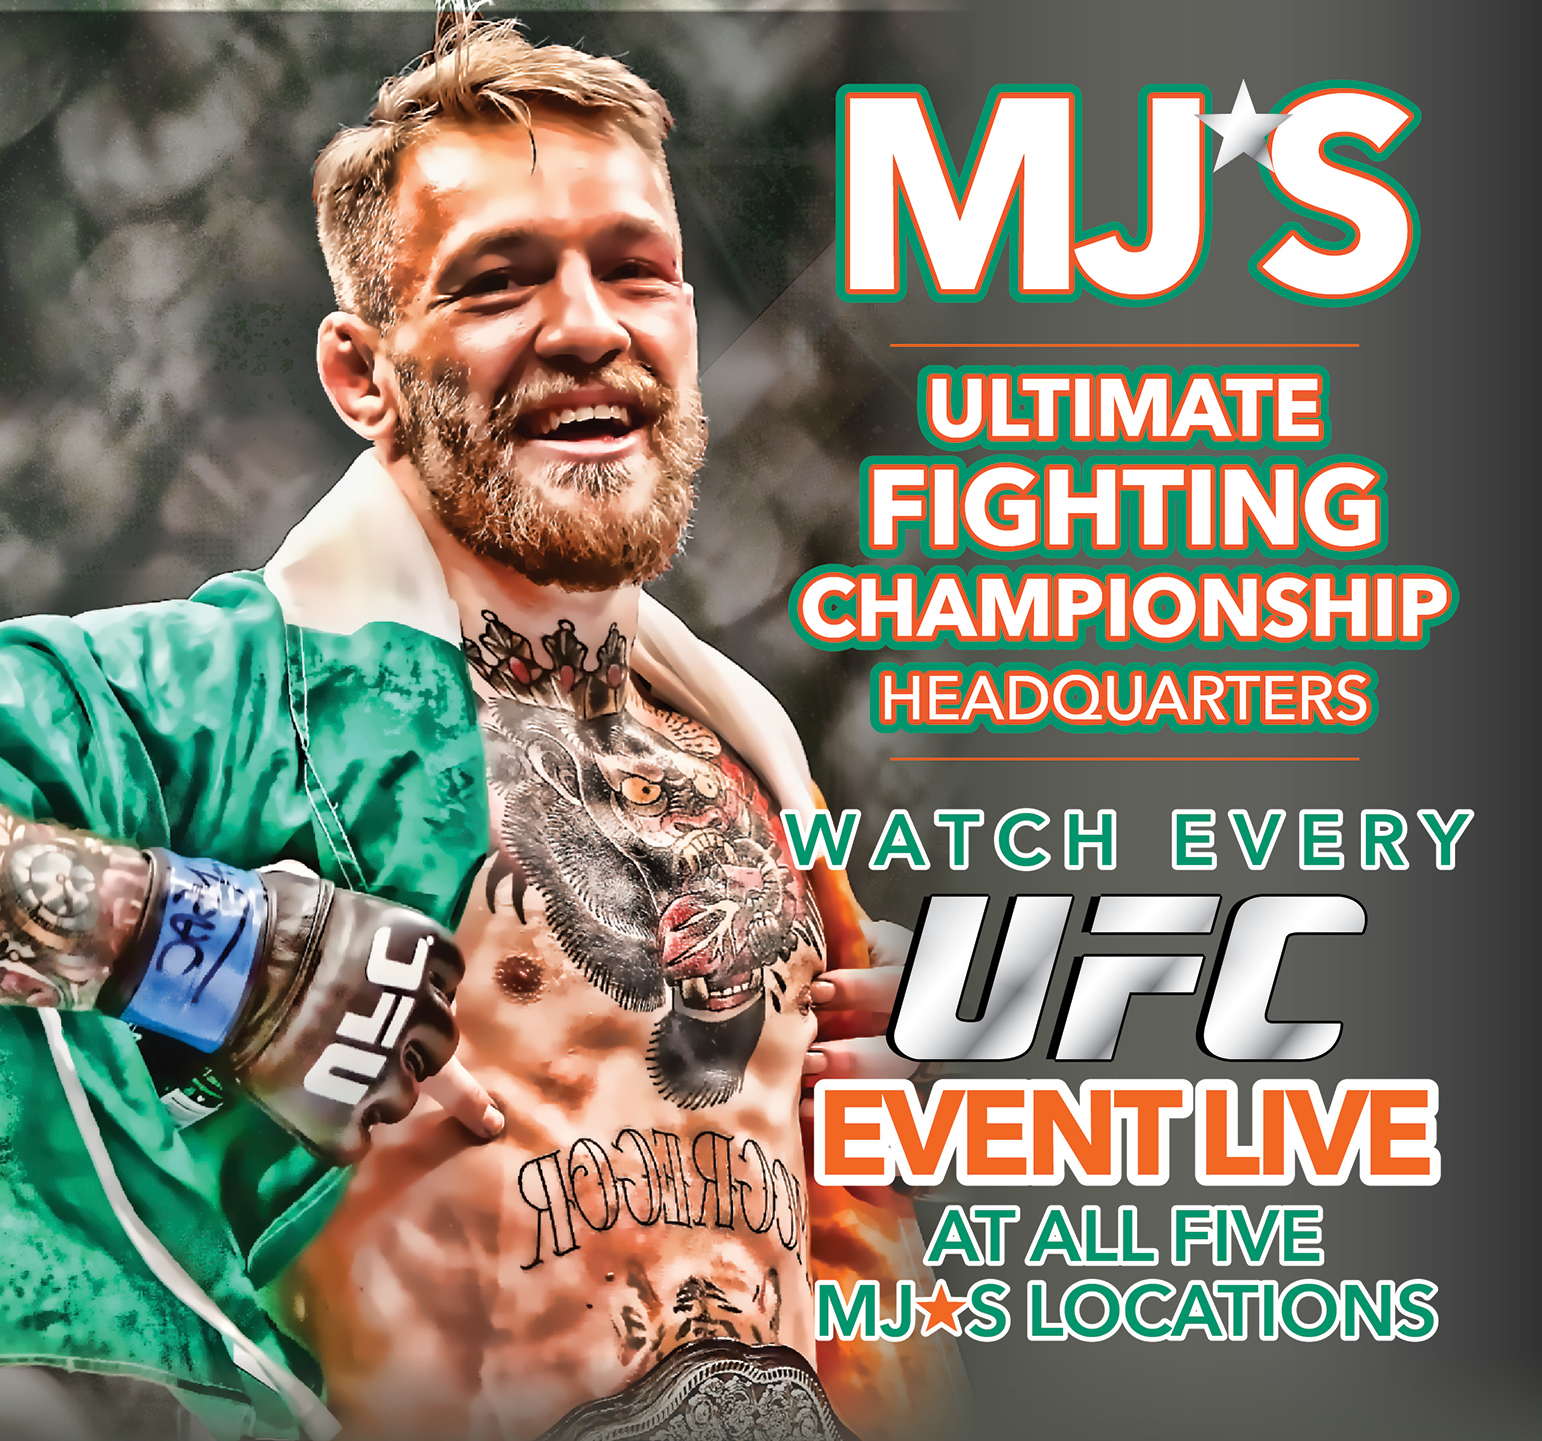 Watch Every UFC Fight at MJ's!